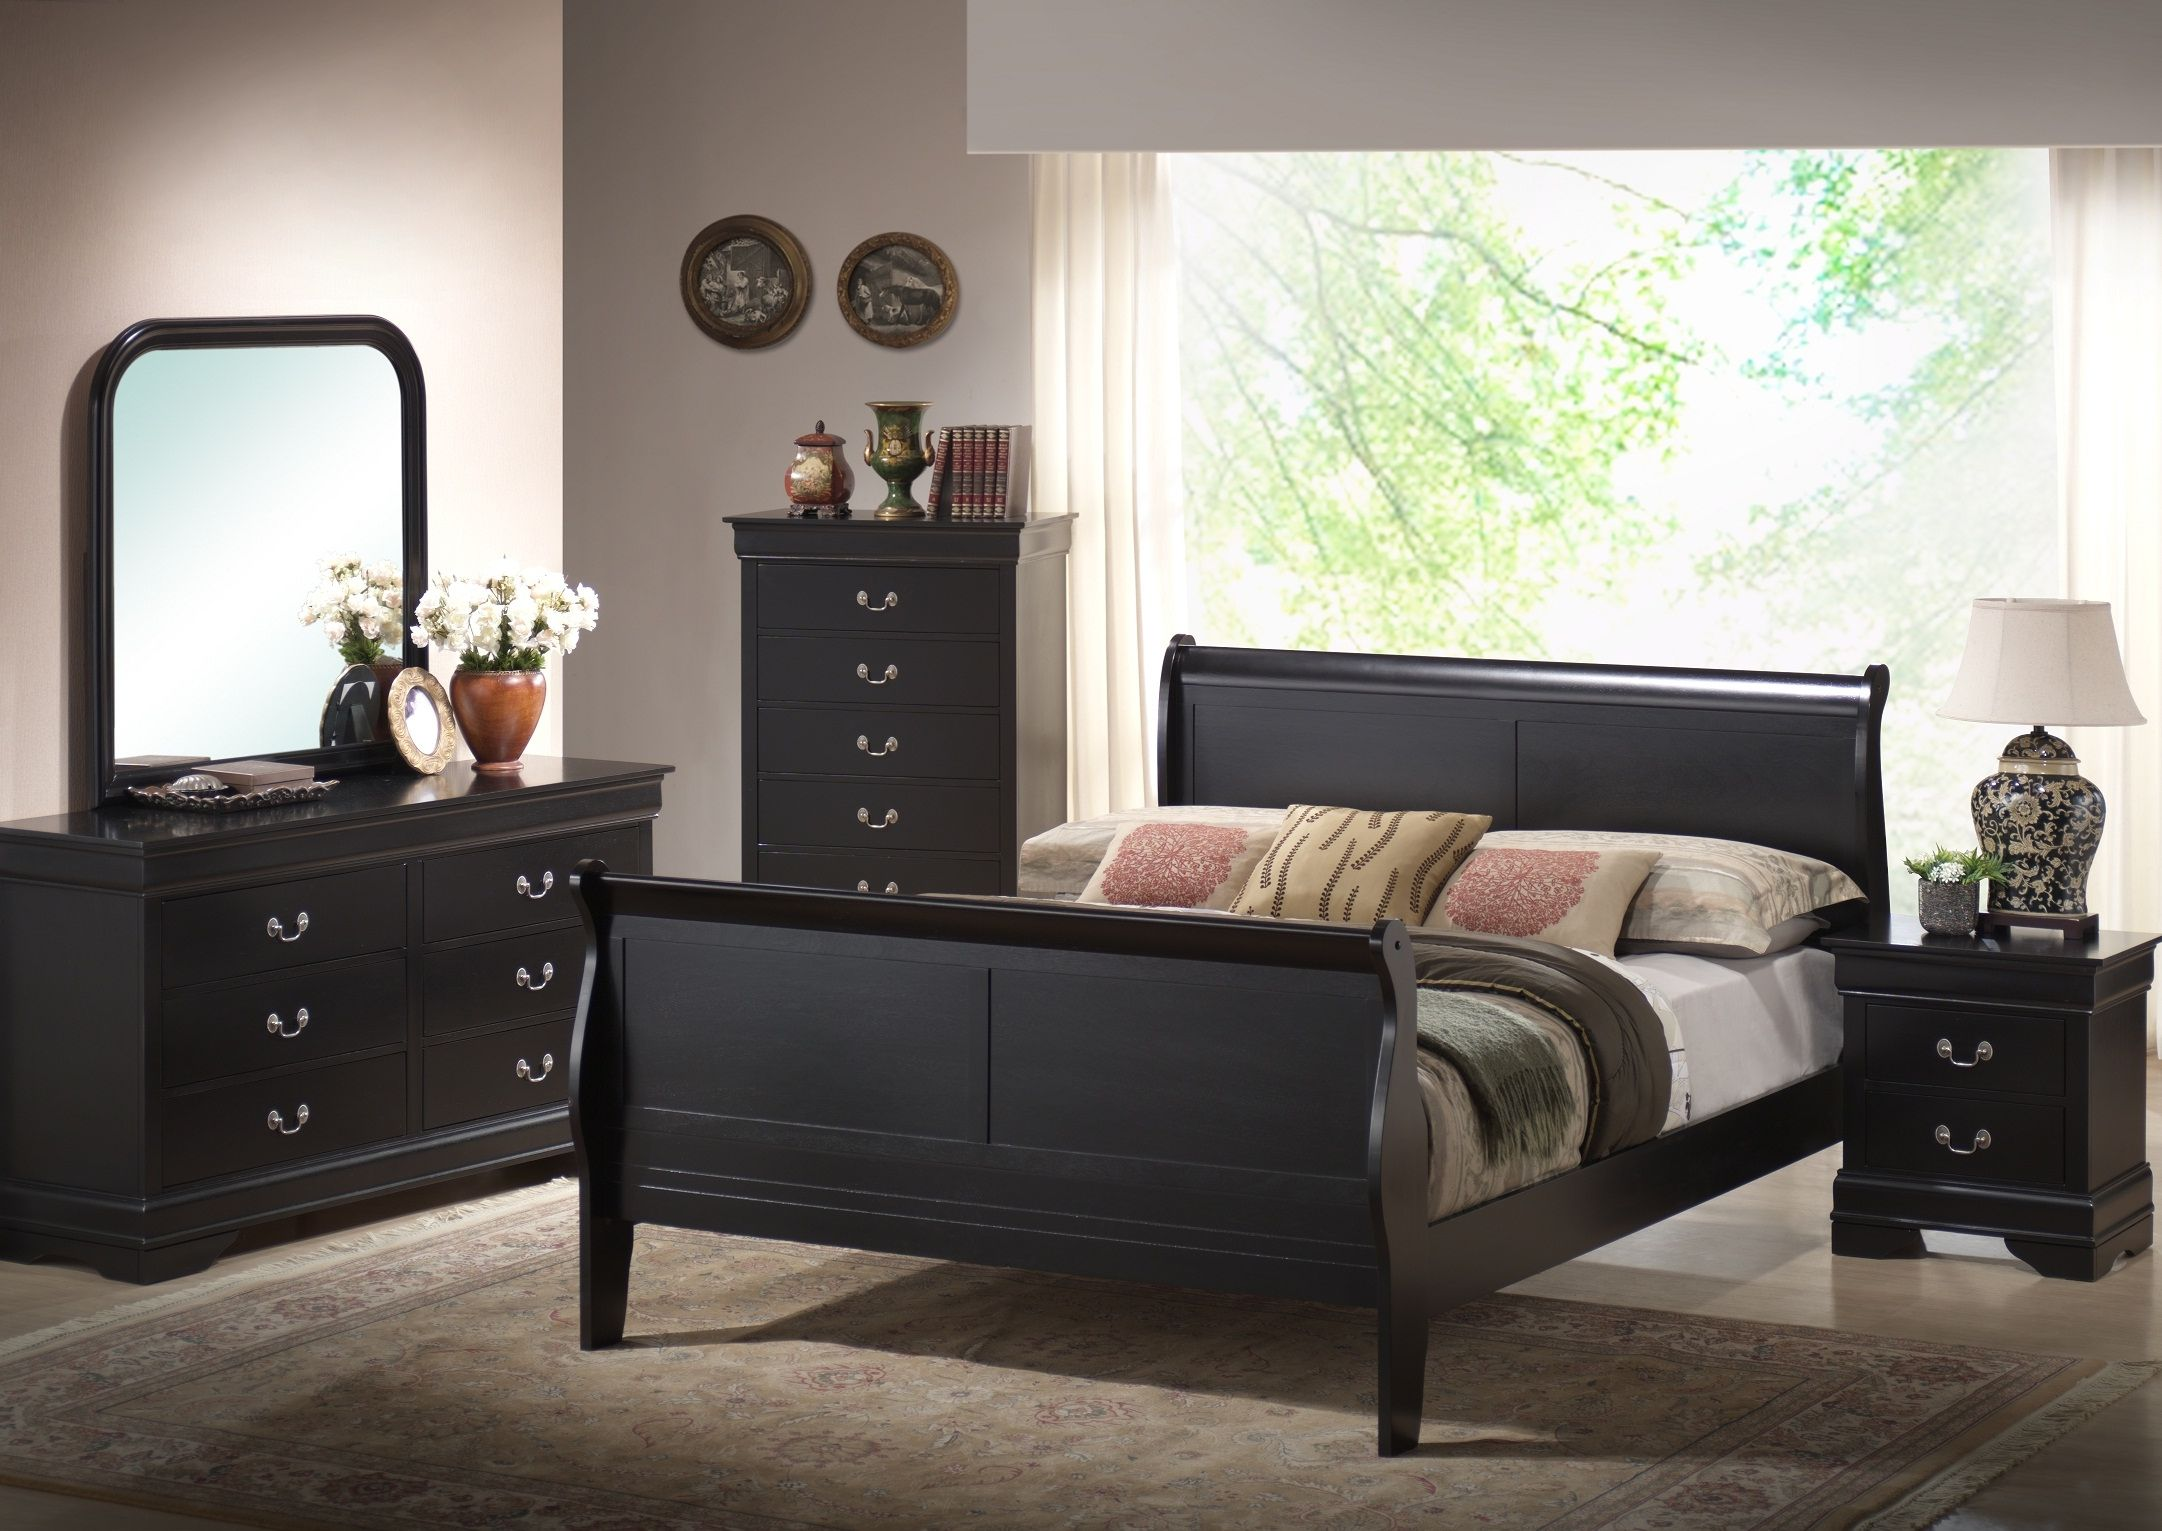 This Harrell Black King Size Modern Bedroom Set Includes Includes A King  Sized Modern Sleigh Bed, Dresser With Attachable Mirror, And Two Night  Stands.